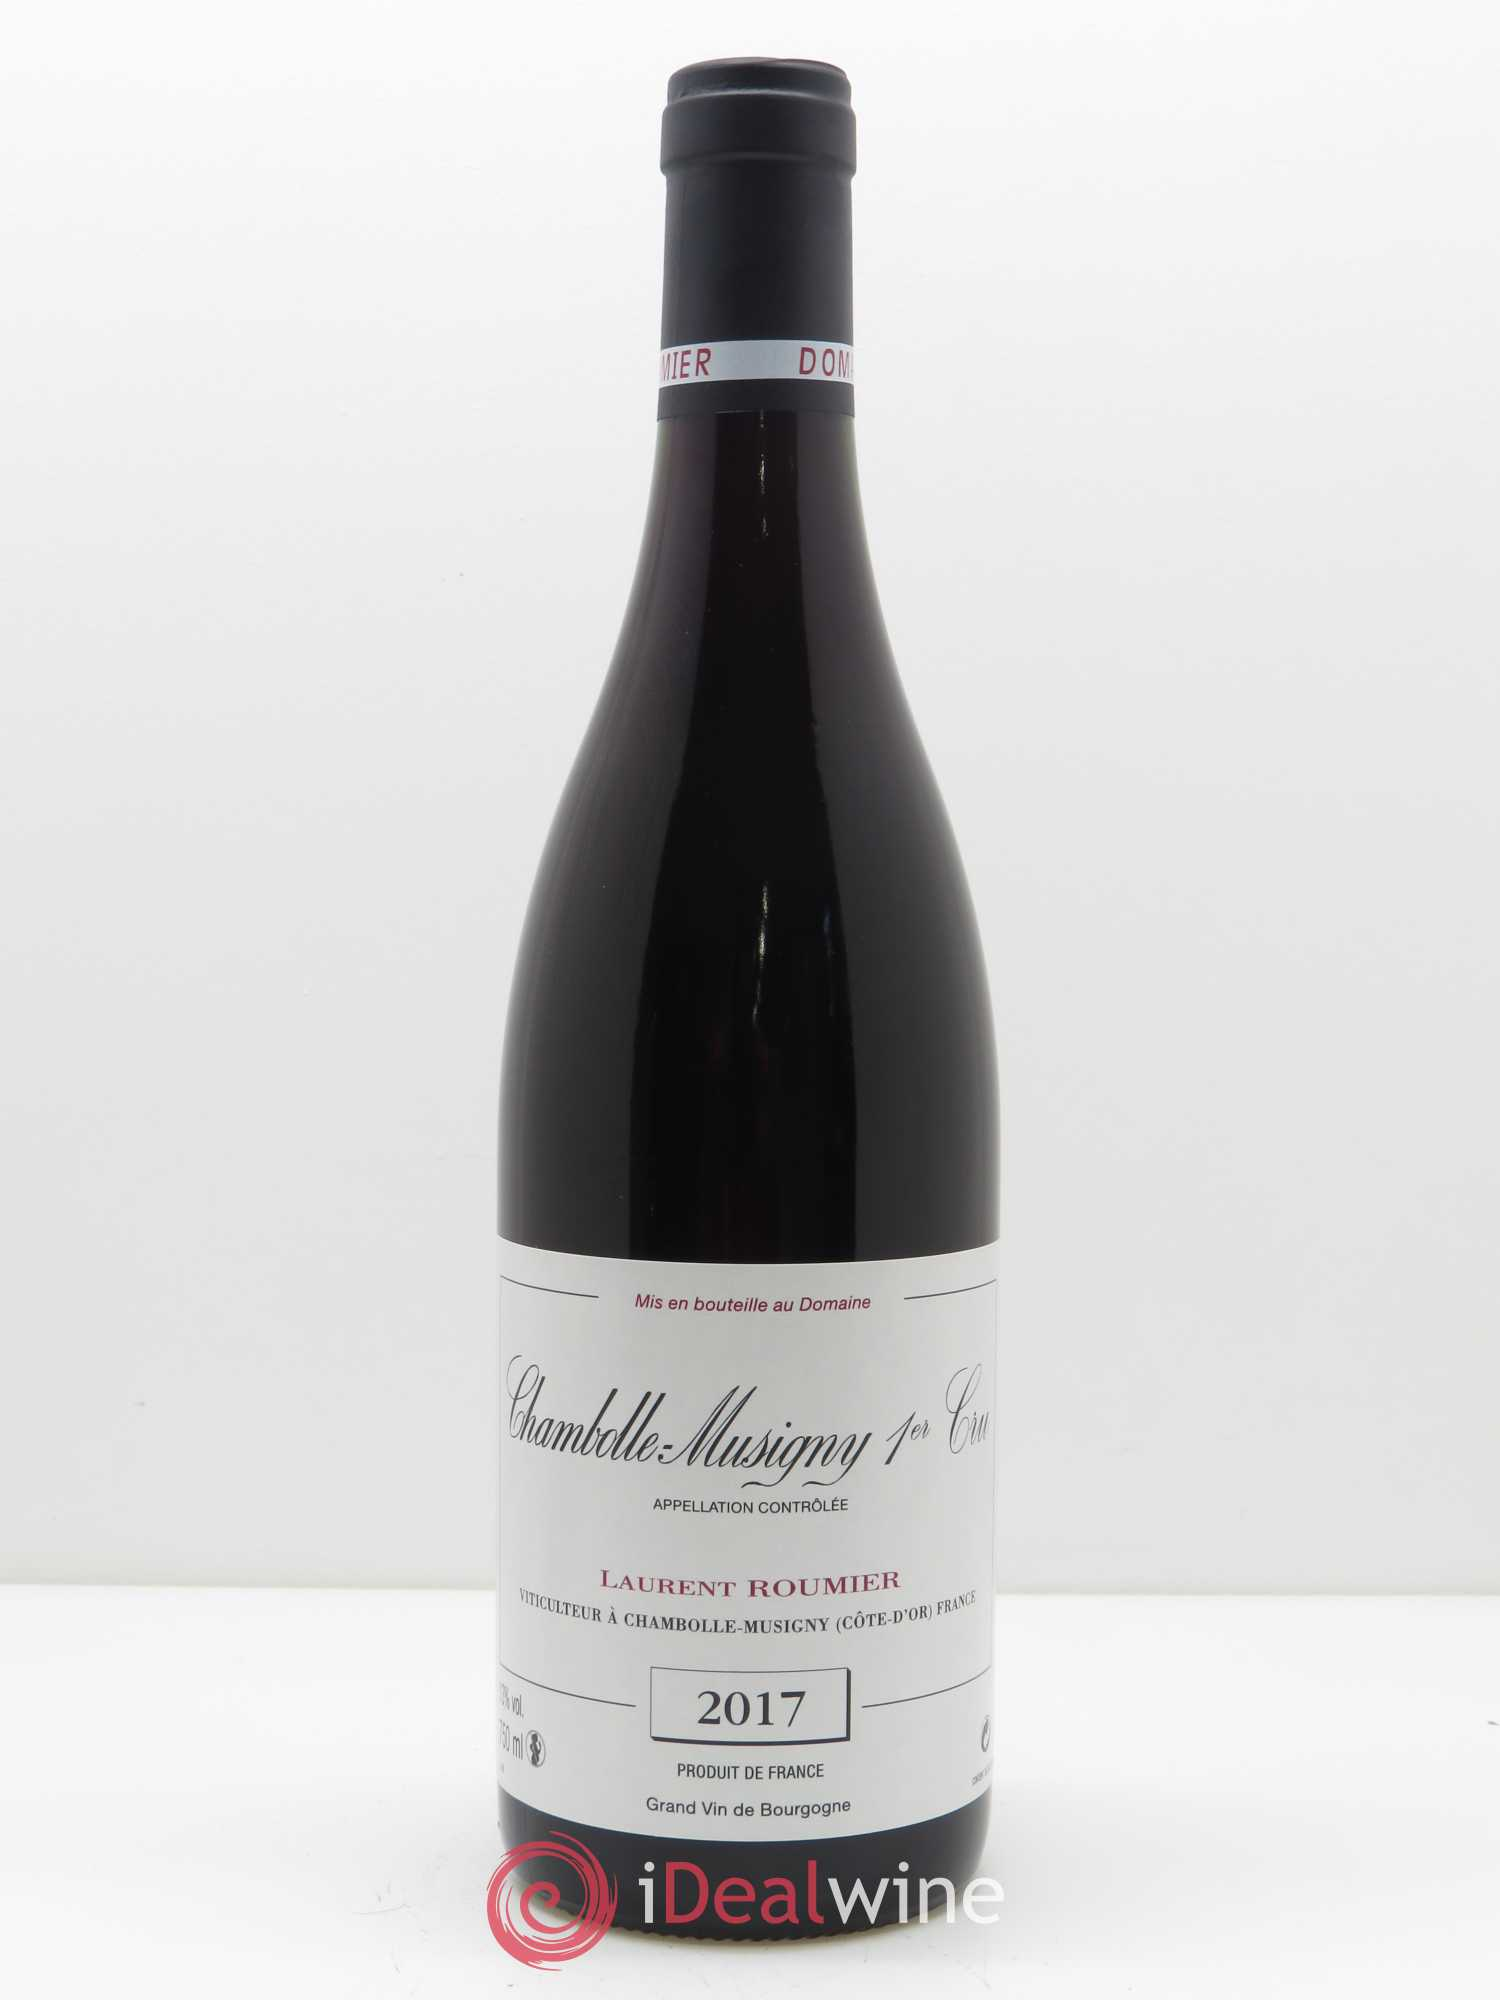 Chambolle-Musigny 1er Cru Laurent Roumier